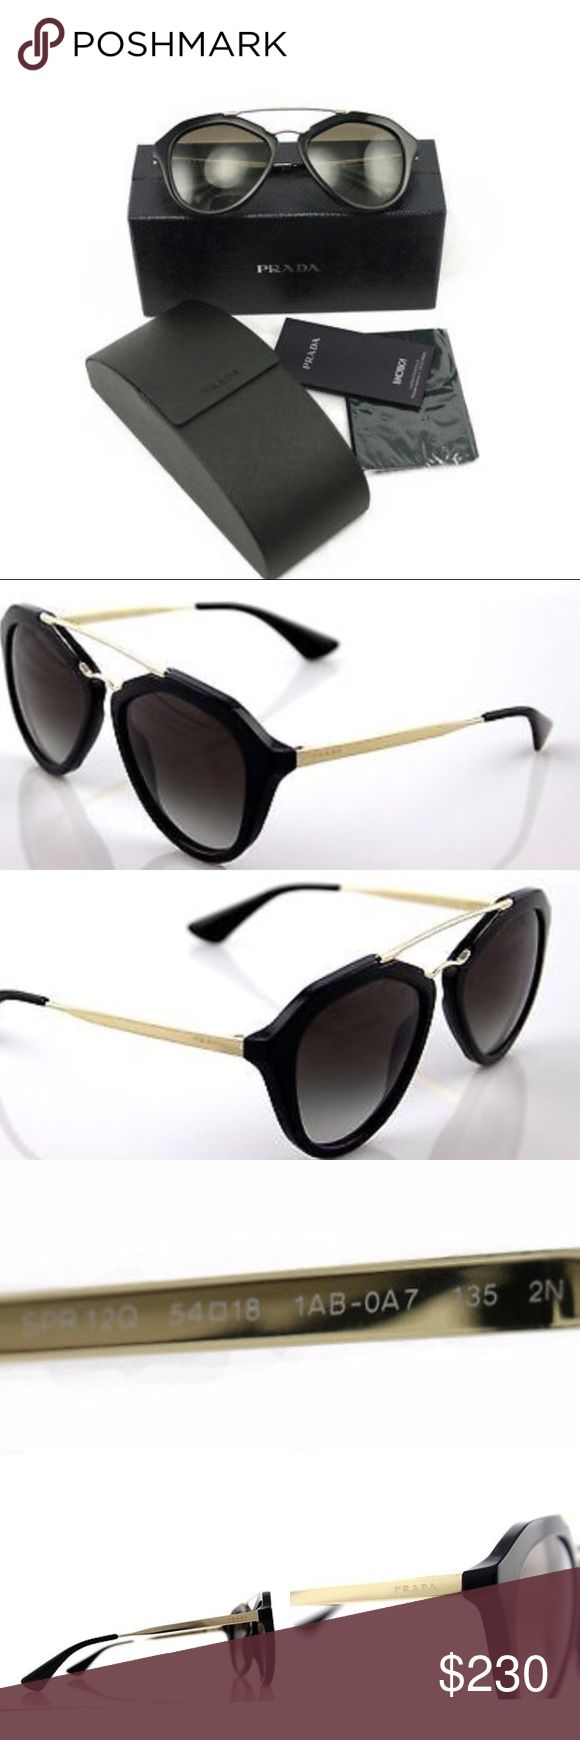 NWT AUTHENTIC Prada Sunglasses SPR12Q 100% AUTHENTIC / Genuine & Brand NEW PRADA Sun Glasses Shades Sunnies   Shape: Cat Eye Gender: Woman, Women's, Female Color: Black / Gold Eye/Bridge/Arm: 54/18/135 Lens Color: Gray Gradient  Frame Material: Acetate  Protect your eyes with these stylish Sunglasses by Prada. These are the Hottest Prada ladies sunglasses from the Cinema Collection. Very Popular and Hot item.  Comes with all Retail Original Packaging including Prada Case, Lens Cloth & Papers…